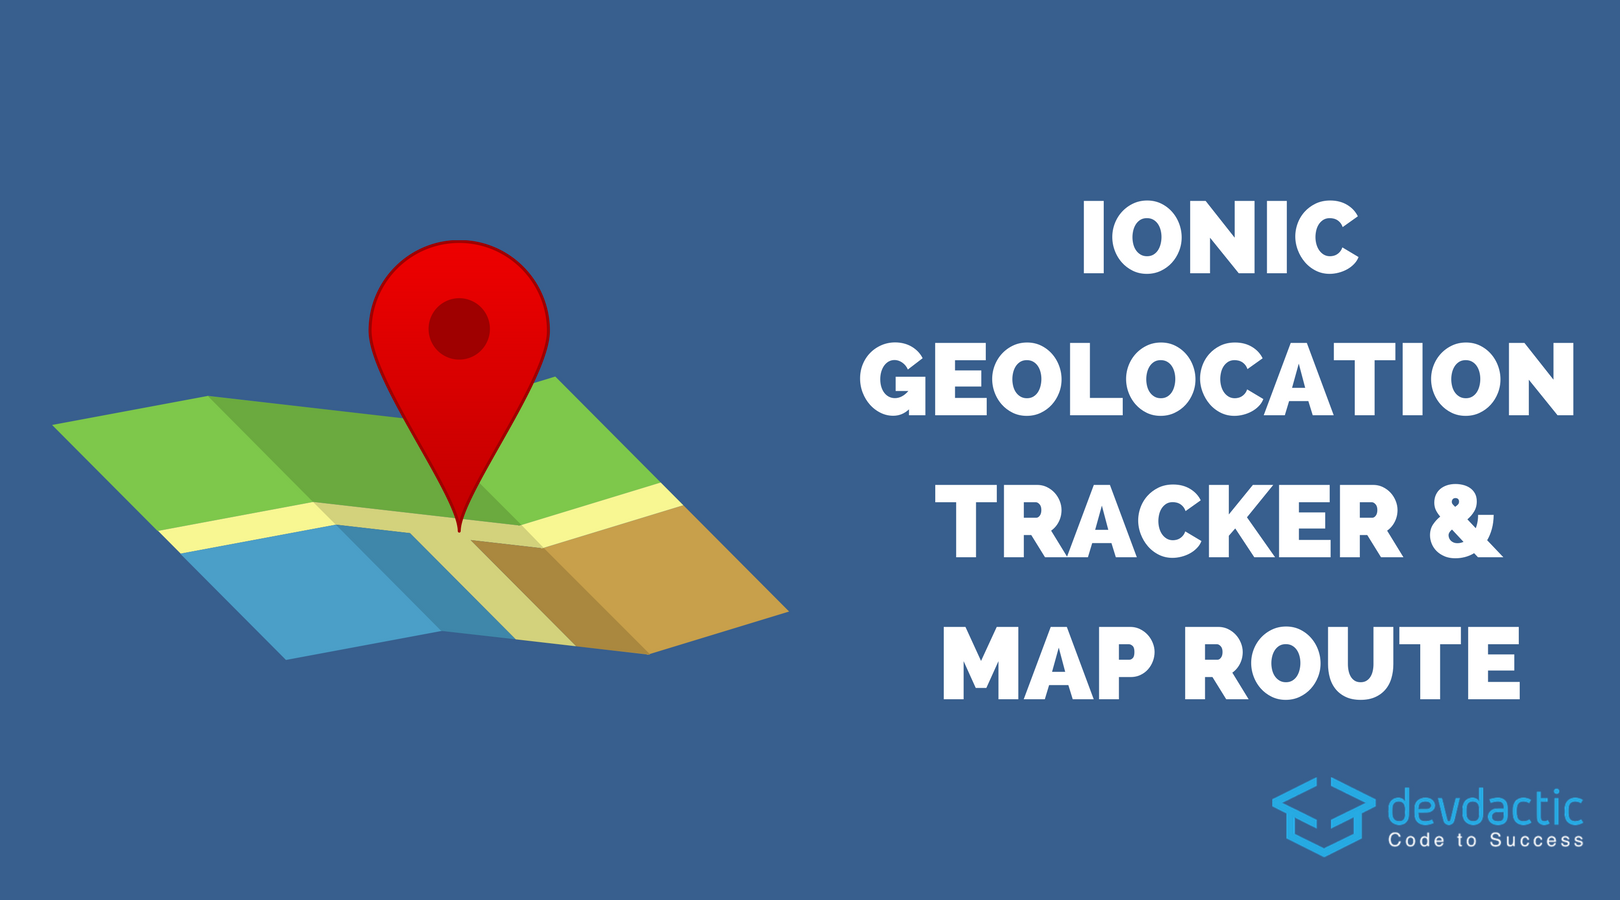 Building an Ionic Geolocation Tracker with Google Map and